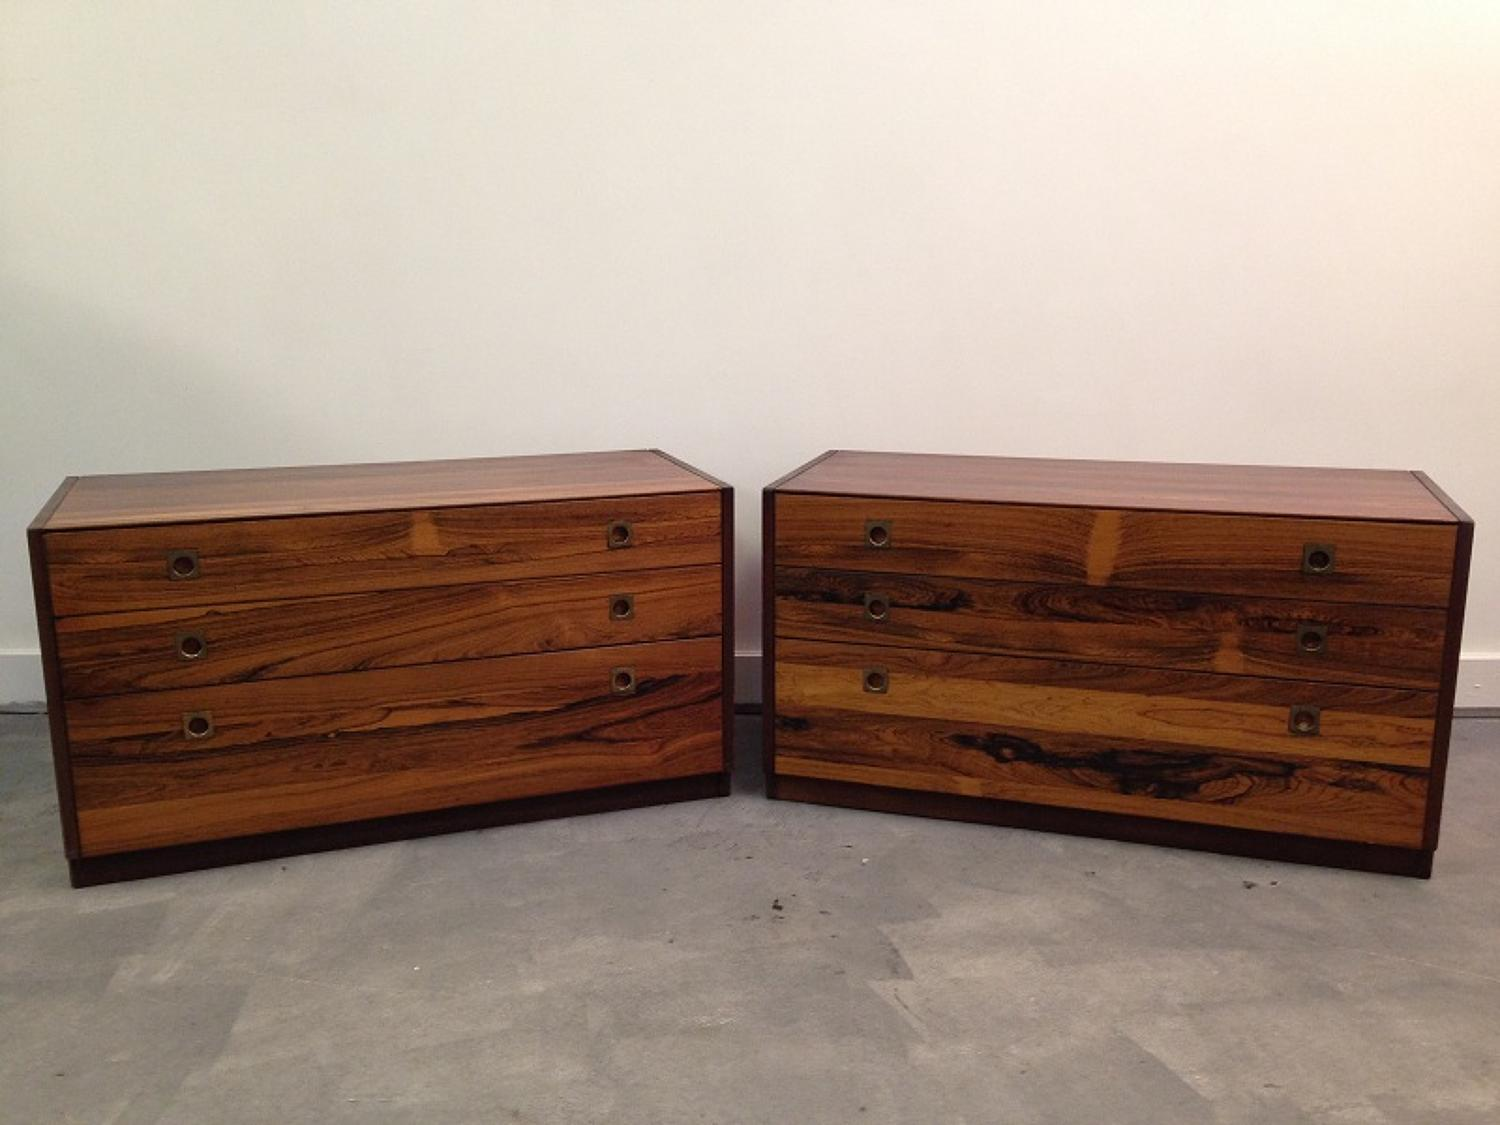 A pair of Heals rosewood chest of drawers